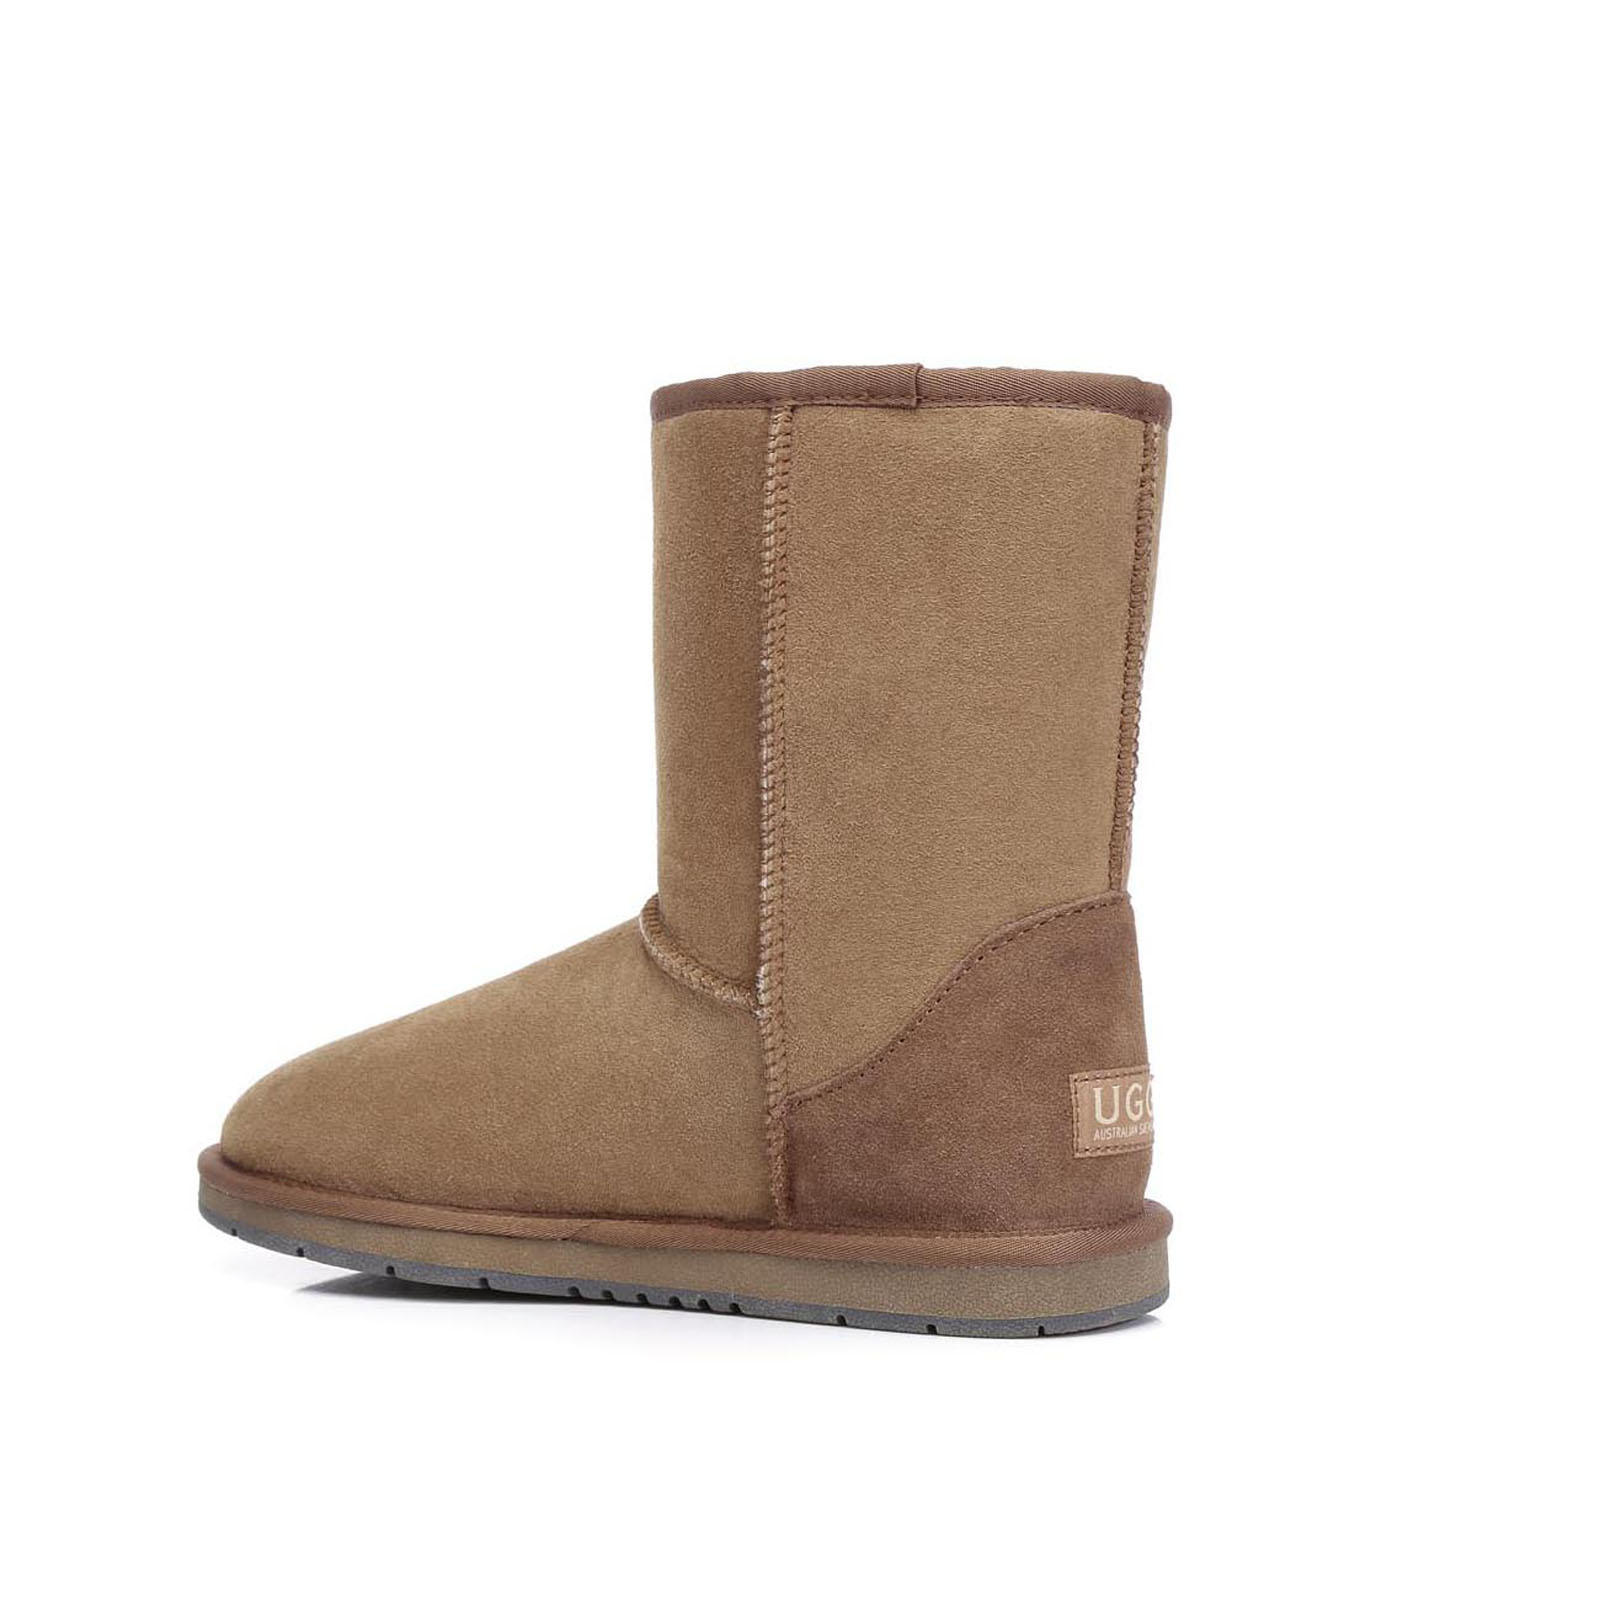 Ugg-Boots-Sheepskin-Classic-Short-Outdoor-Australian-Mens-Ladies-Size-35-44-EU